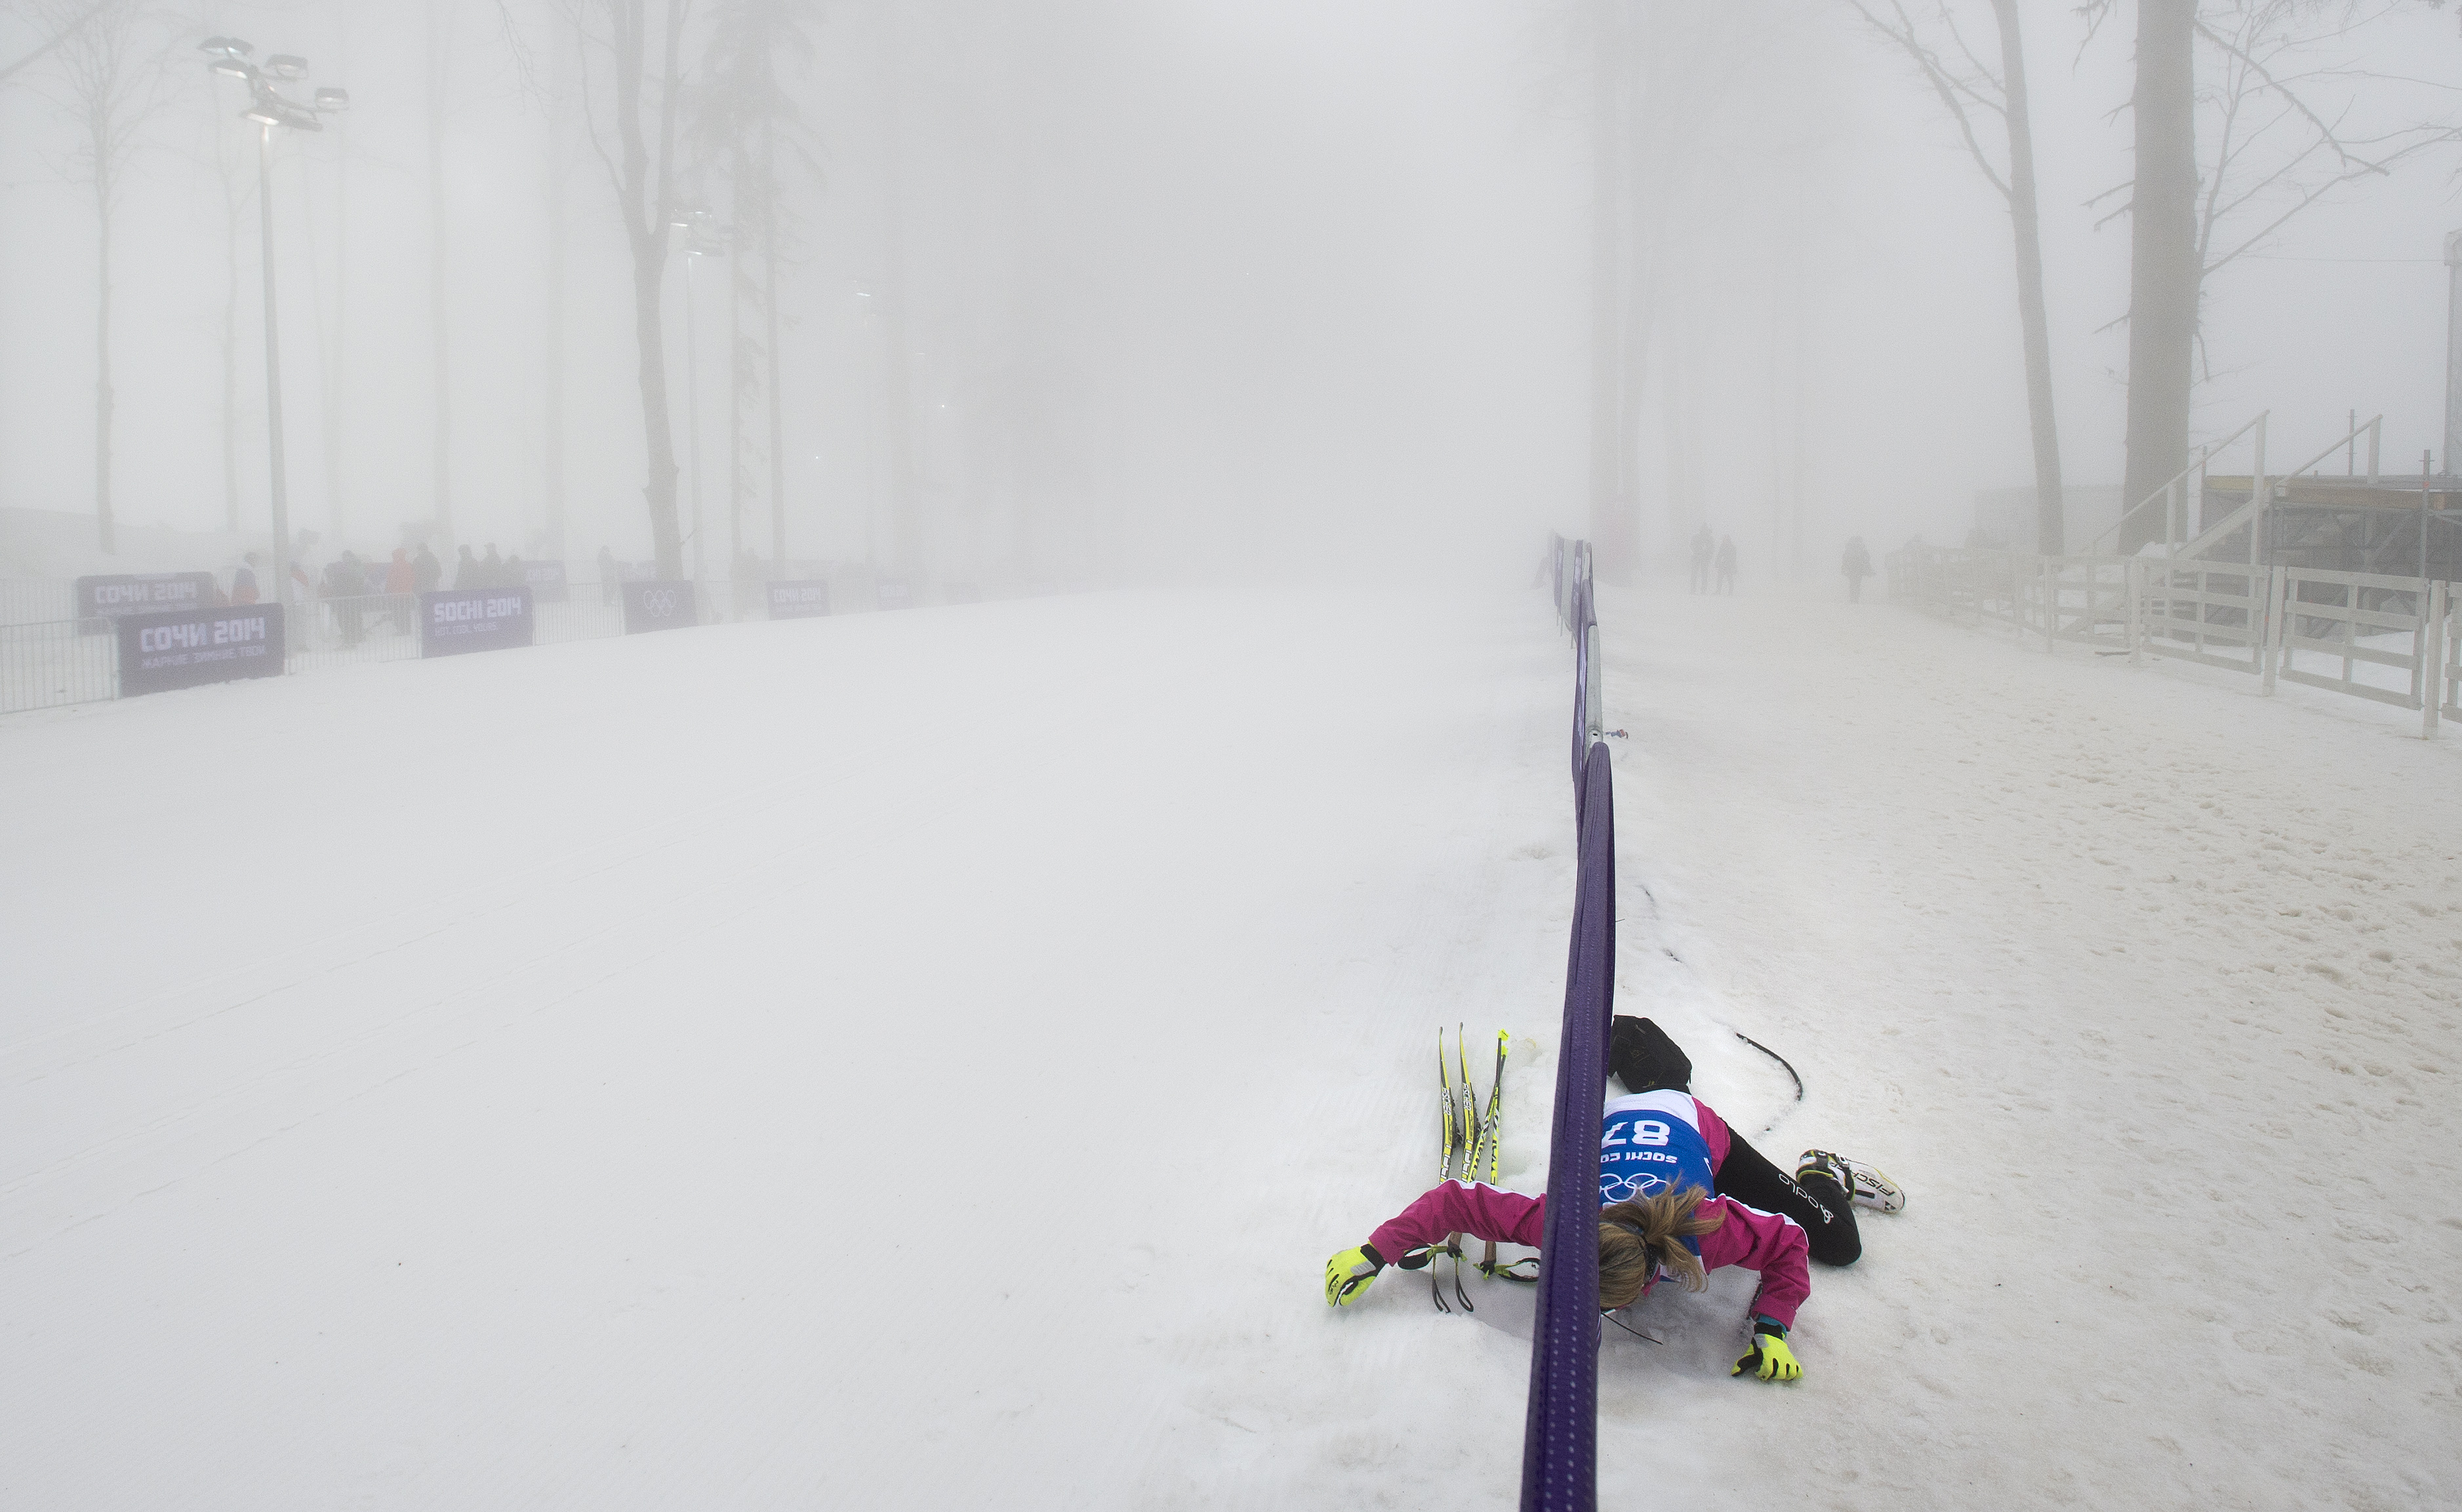 Biathlete Laure Soulie of Andorra crawls under a barricade onto the course to practice in heavy fog during a delay prior to the Men's Biathlon 15km competition at Laura Biathlon Center.